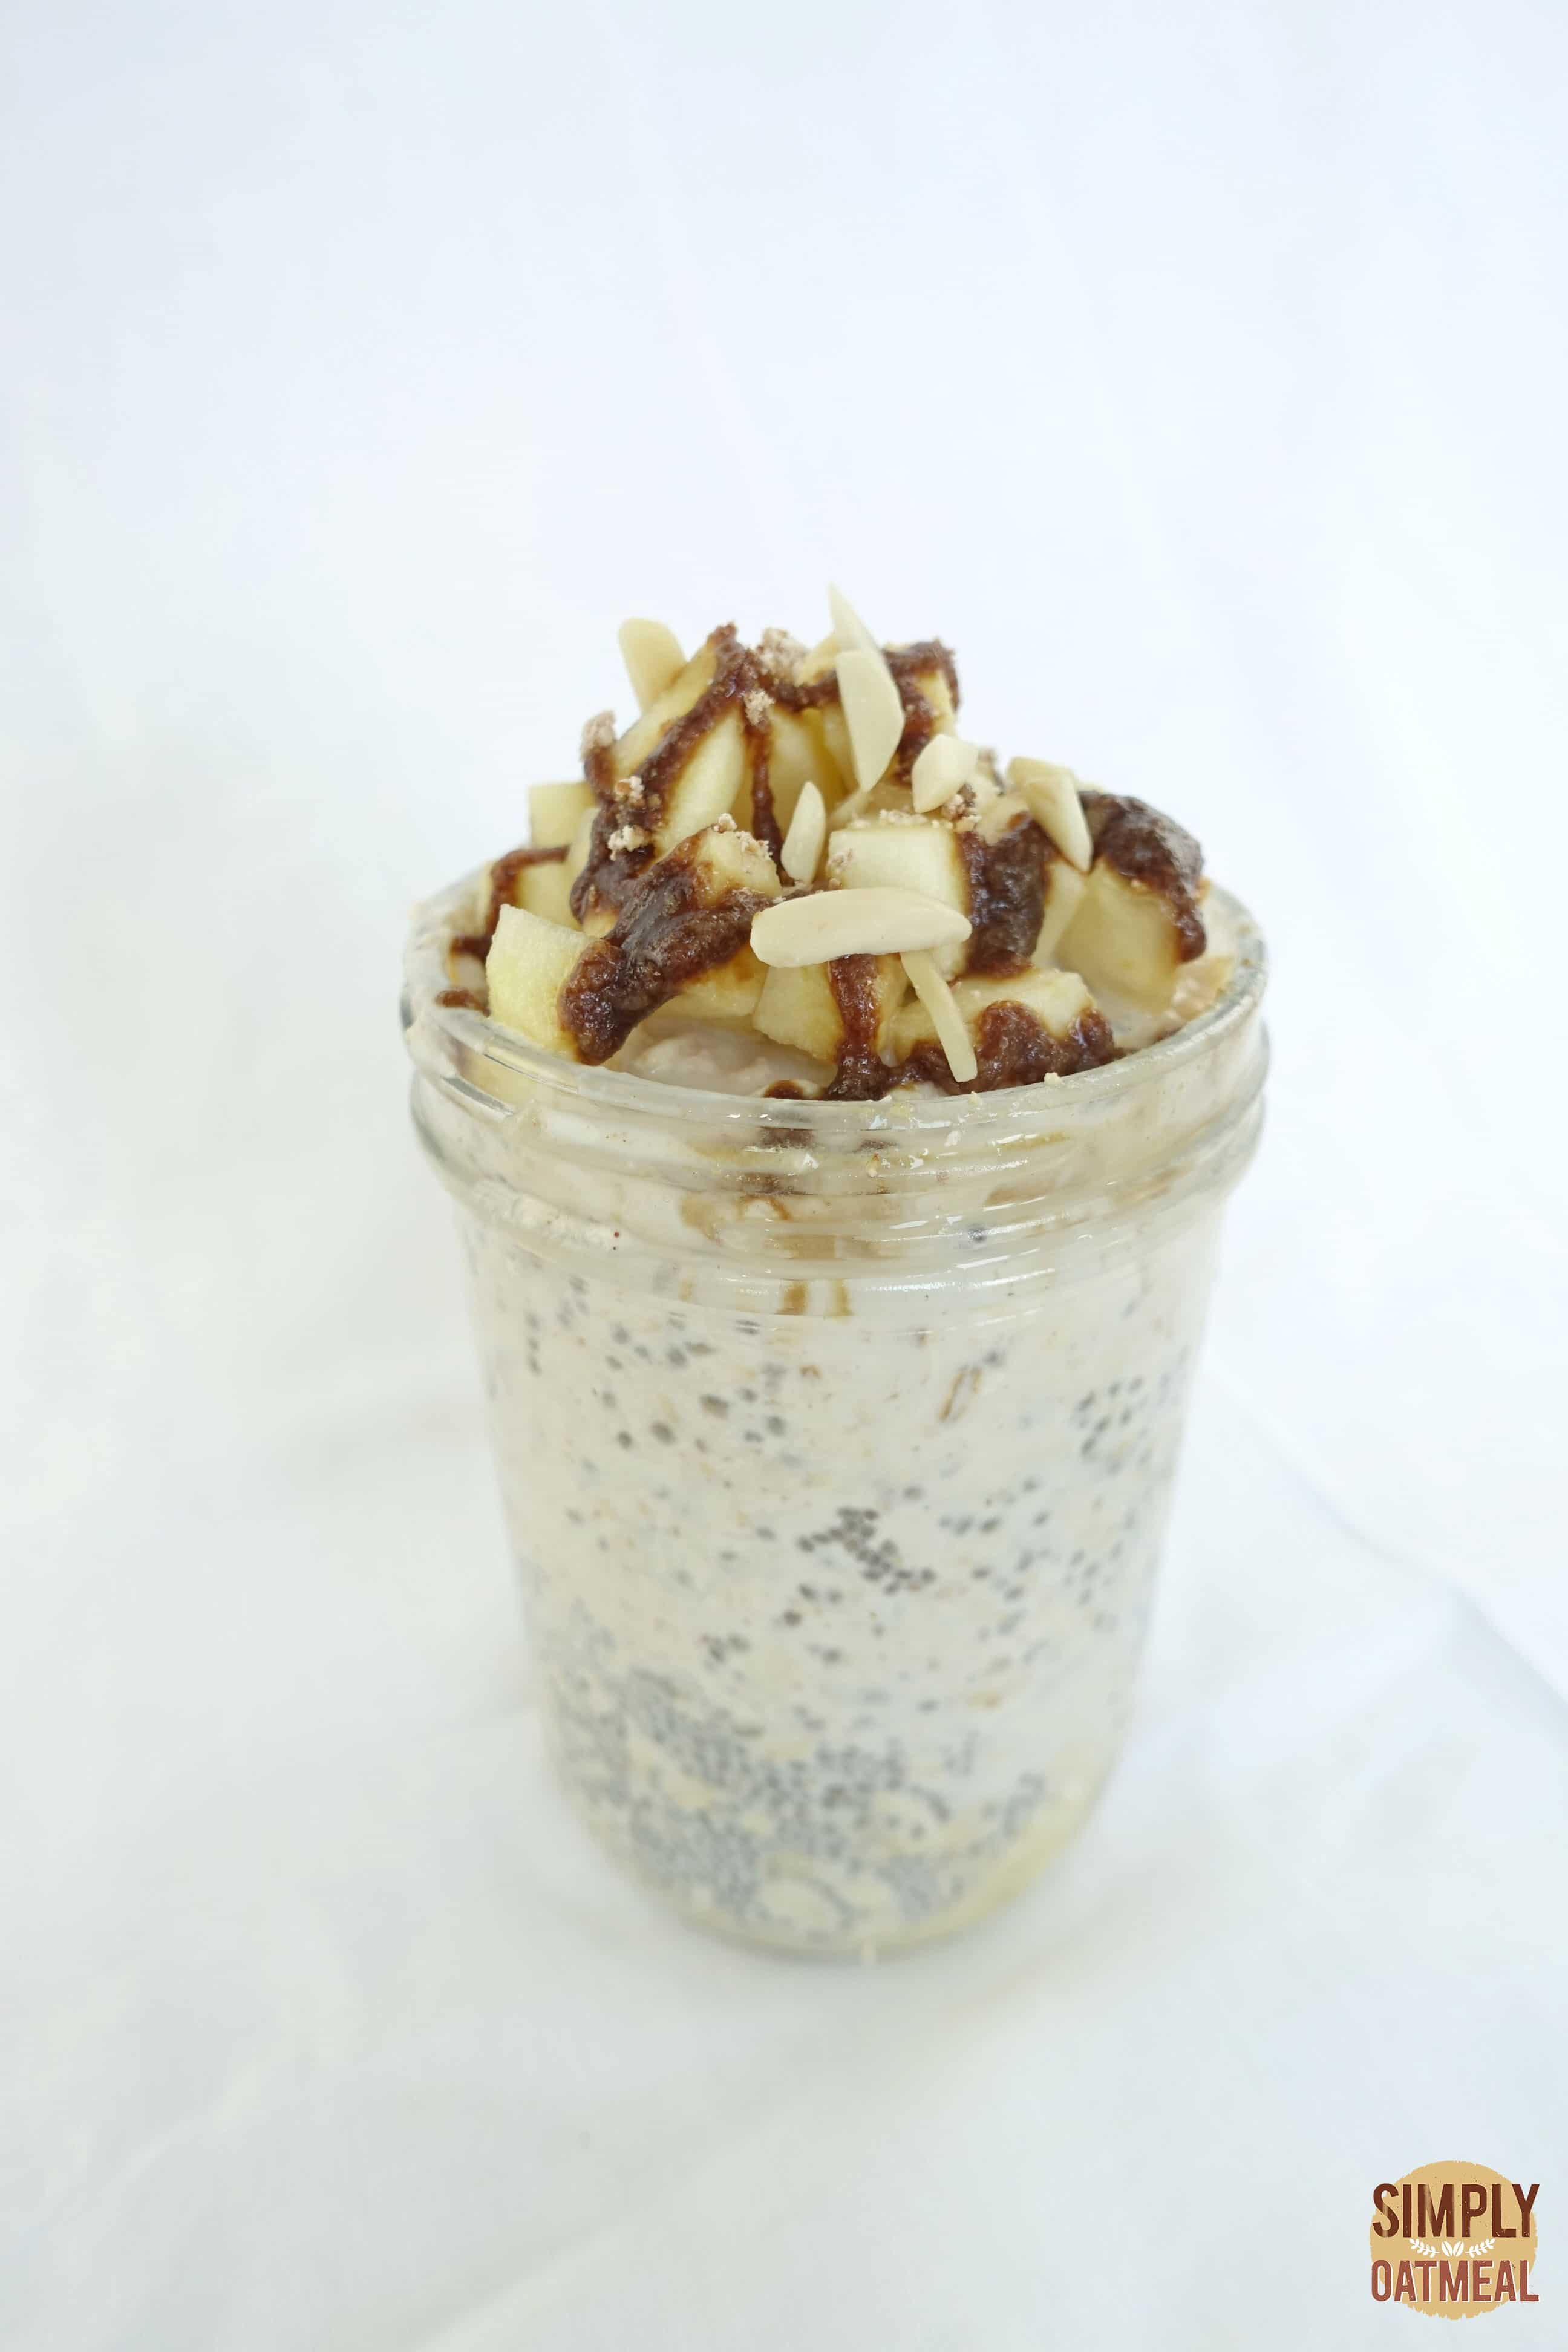 Single serving of caramel apple overnight oats in a tall glass container.